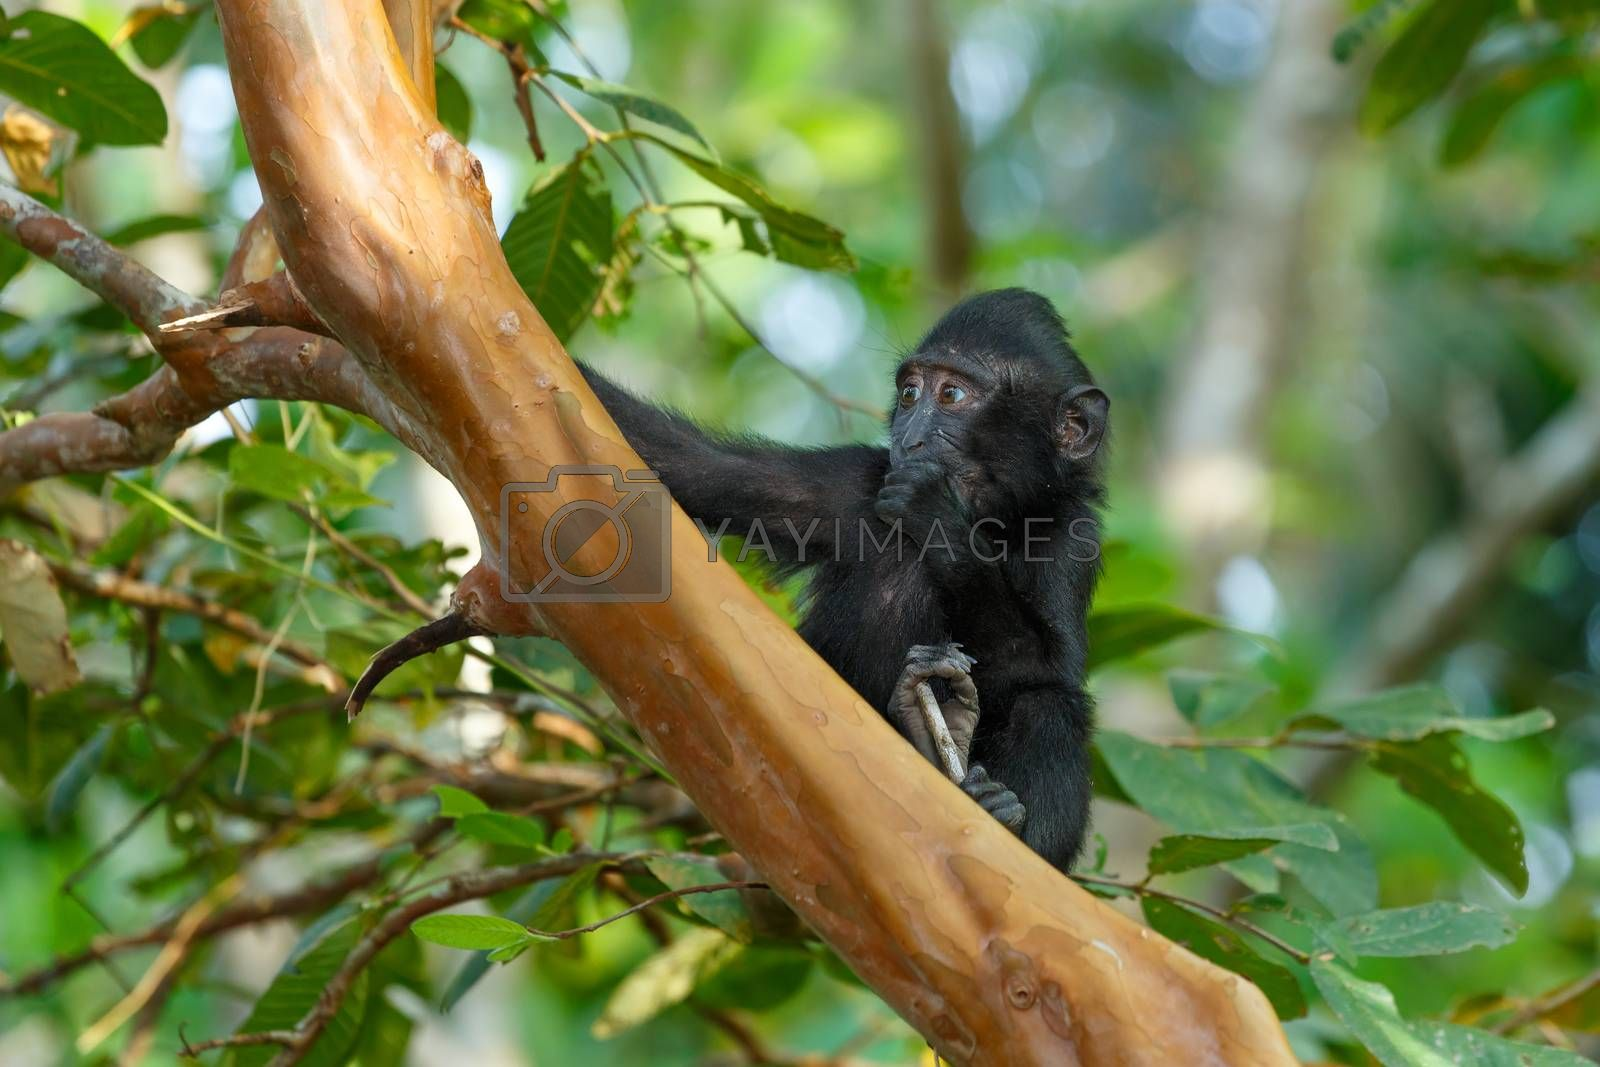 cute baby of endemic monkey Celebes crested macaque known as black monkey (Macaca nigra) in rainforest, Tangkoko Nature Reserve in North Sulawesi, Indonesia wildlife